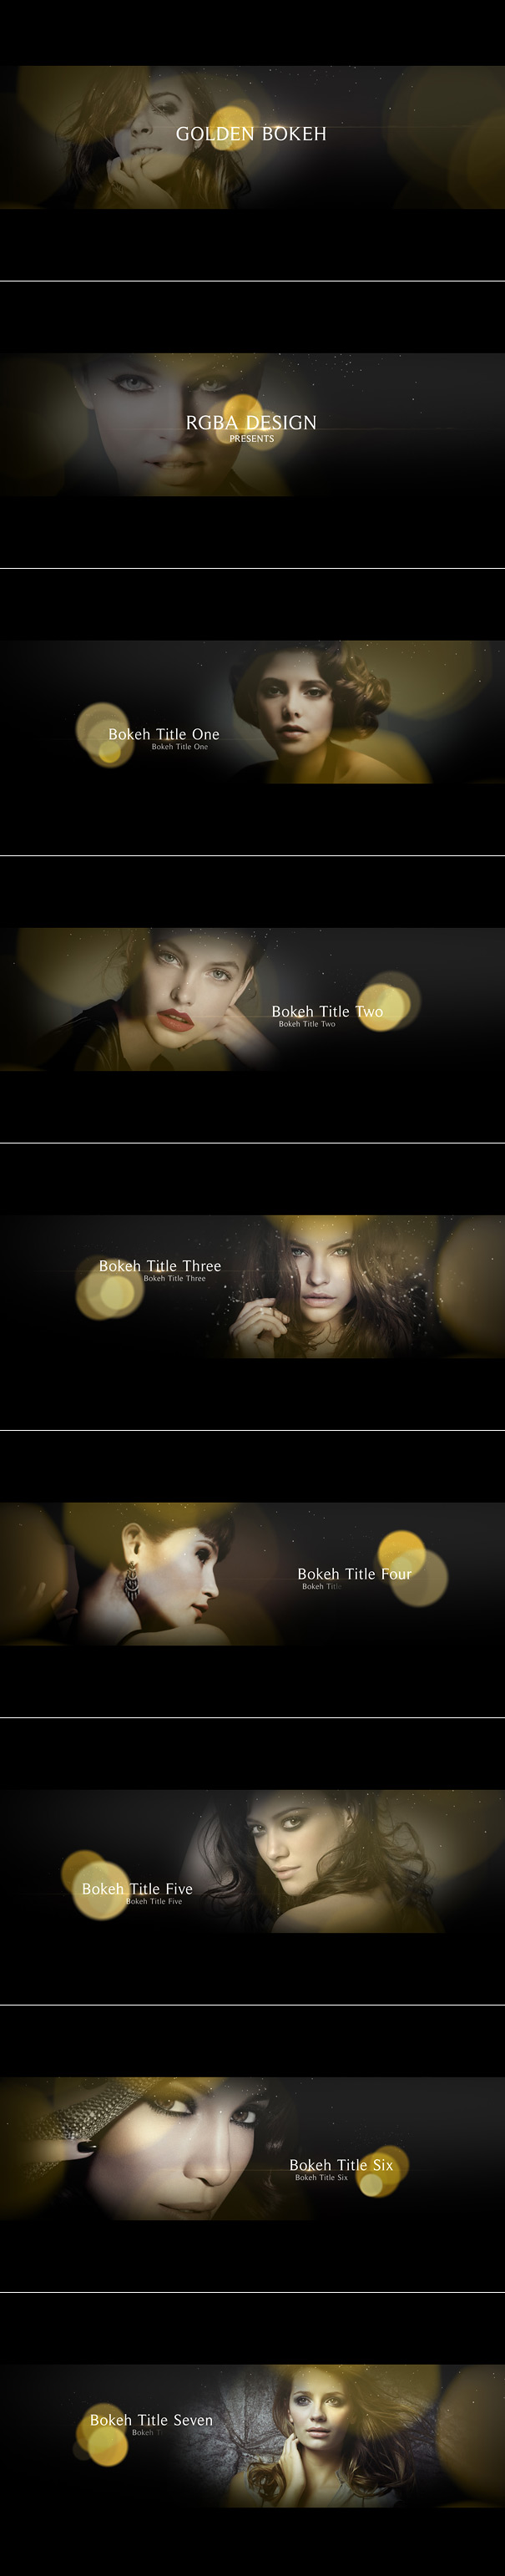 Golden Bokeh Titles After Effects Template for romantic occasion, beautiful love story, movie / TV titles